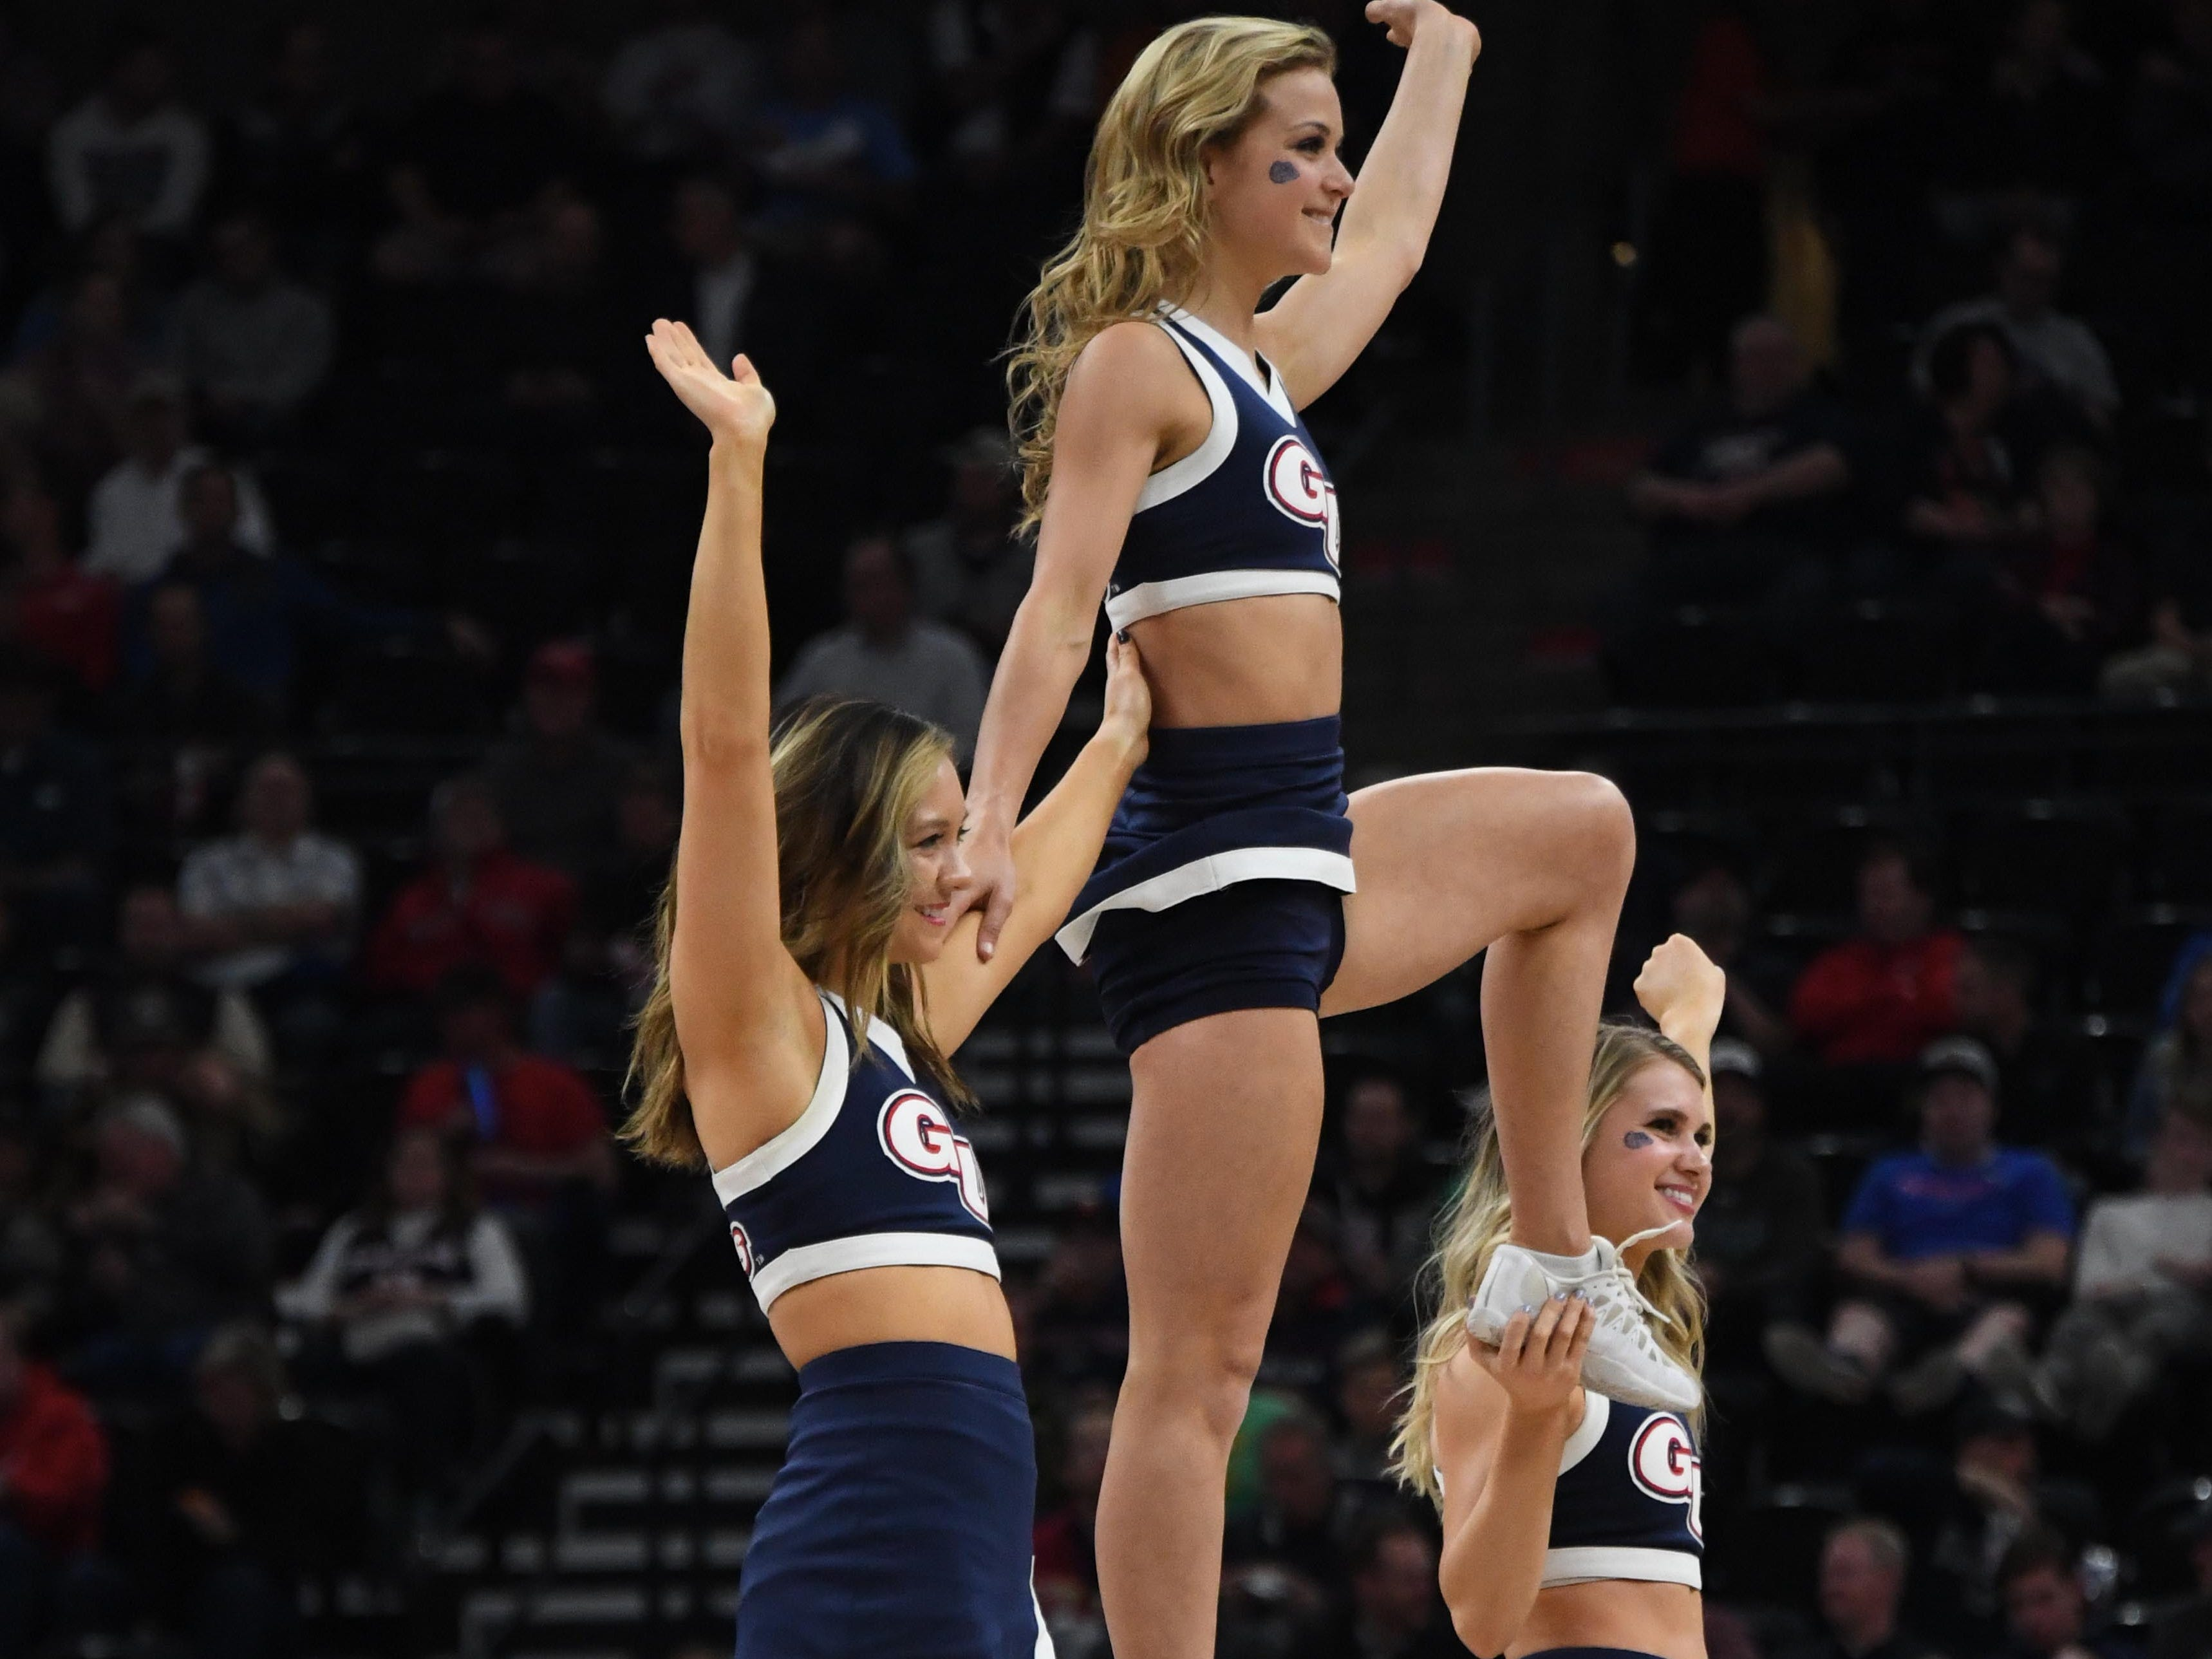 First round:The Gonzaga Bulldogs cheerleaders perform during the game against the Fairleigh Dickinson Knights.